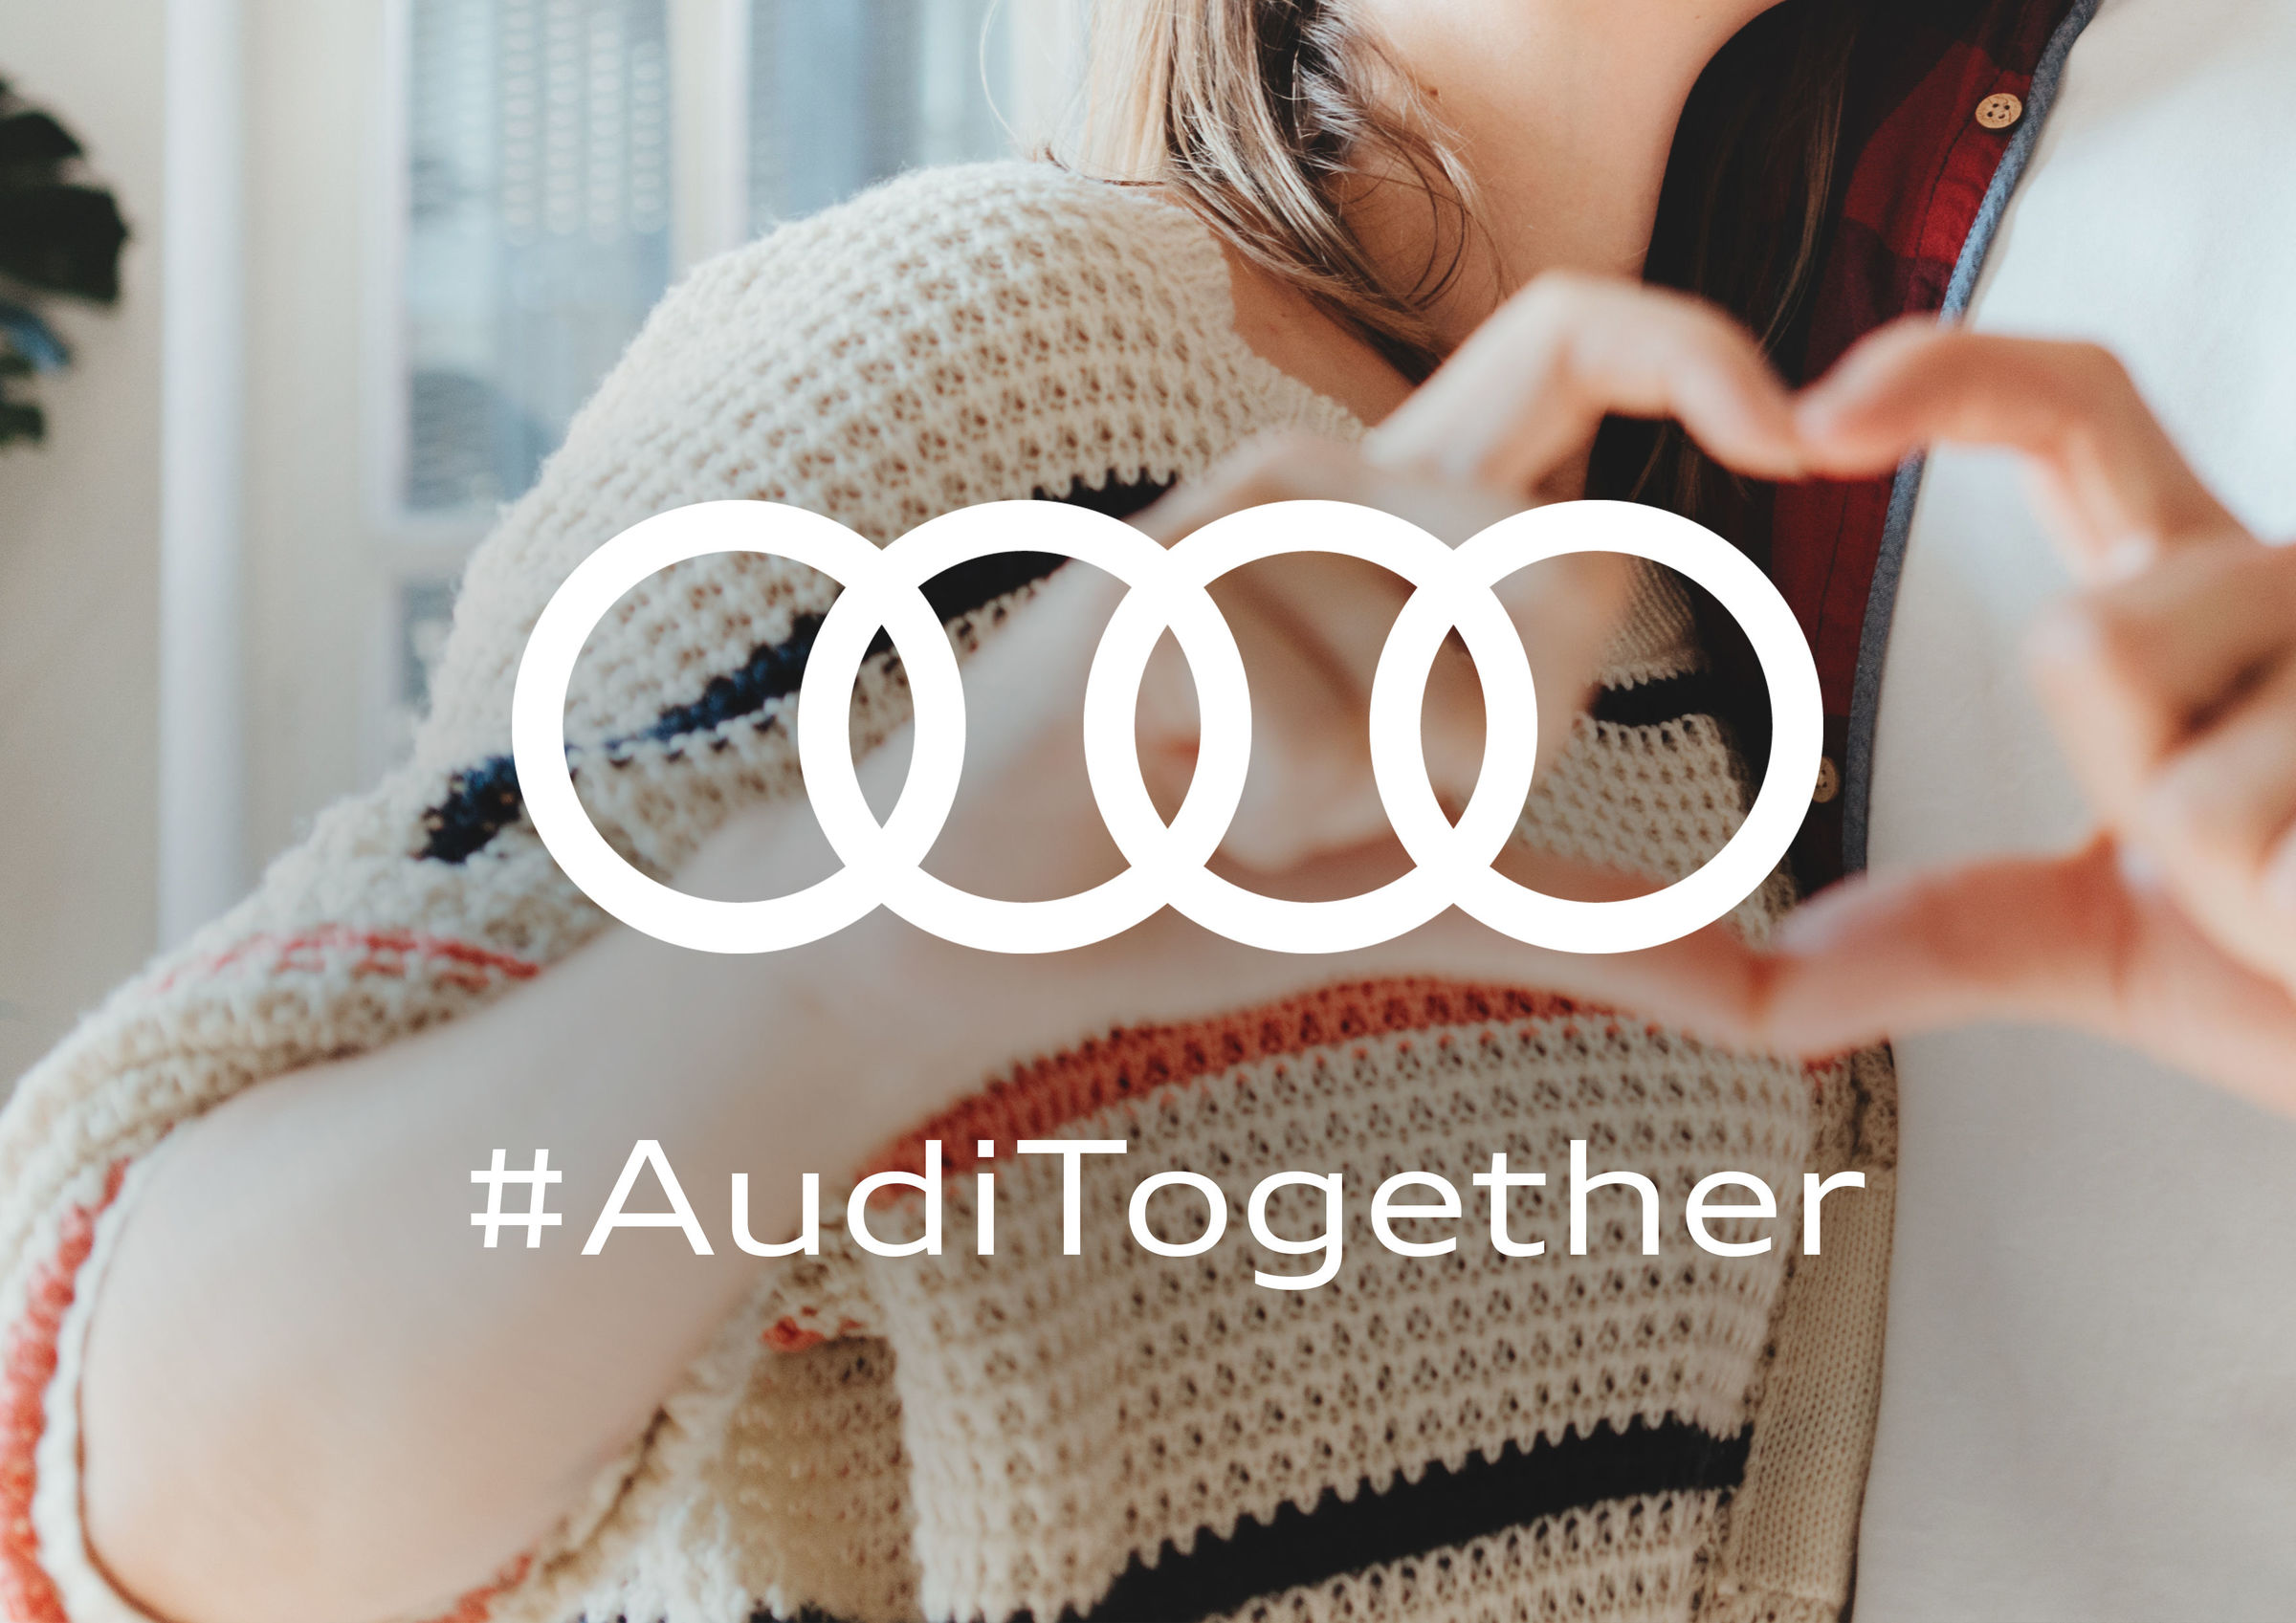 #AudiTogether